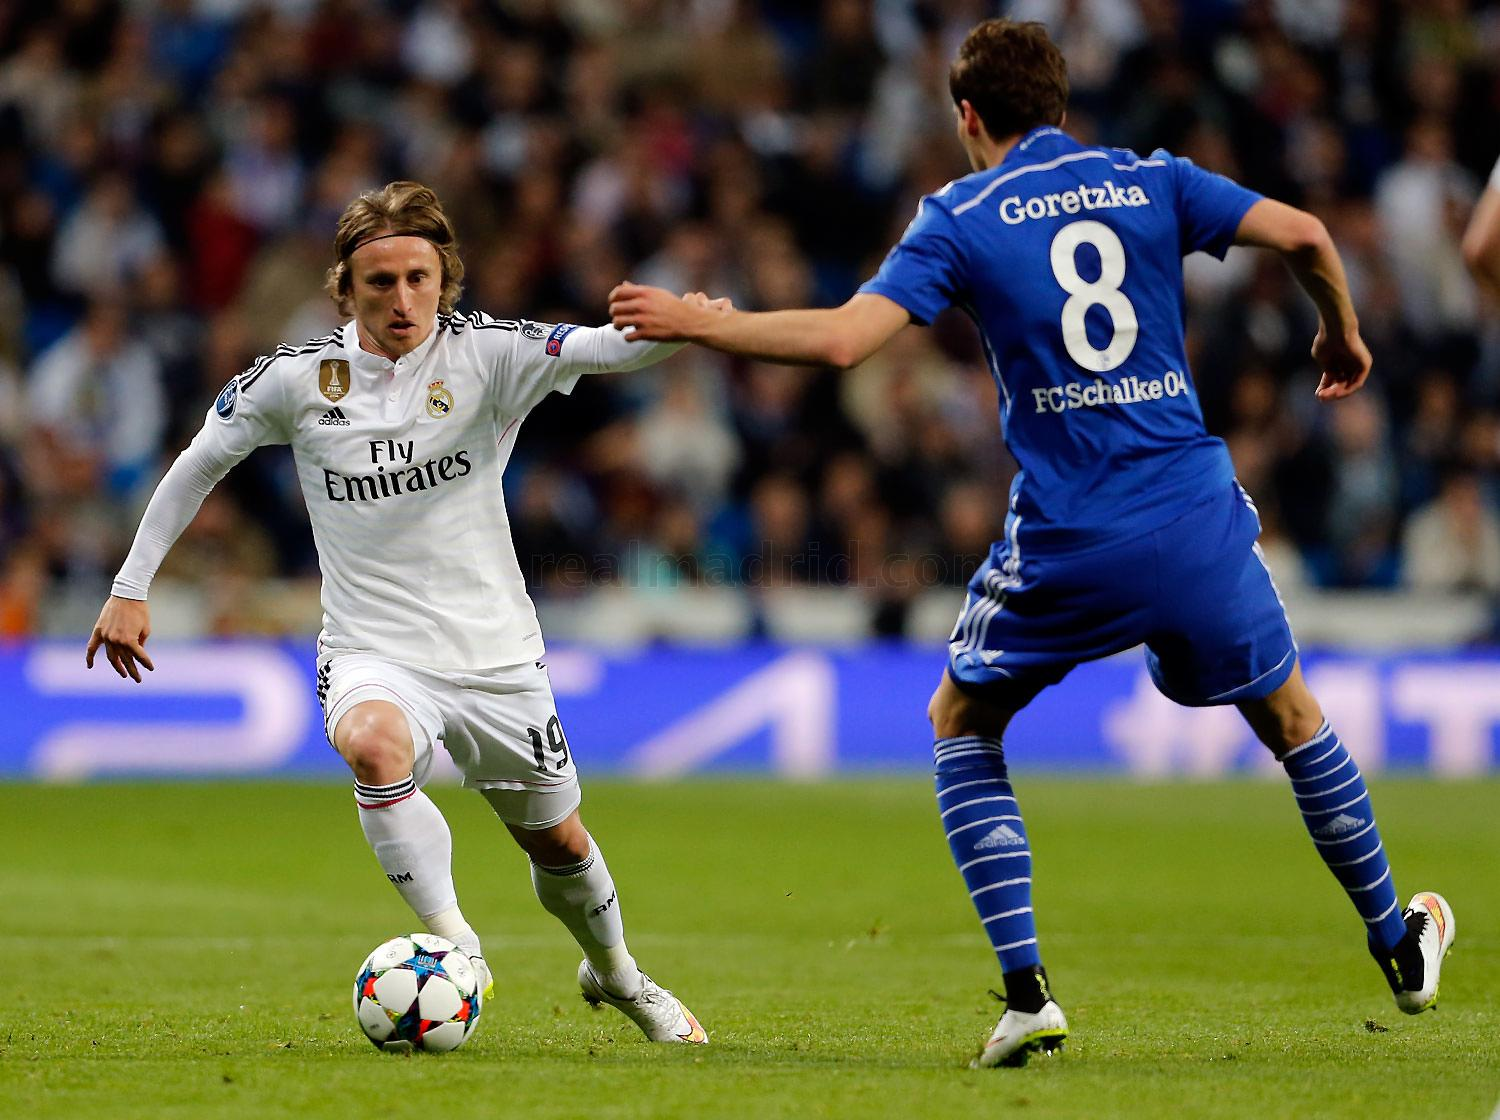 Real Madrid - Real Madrid - Schalke 04 - 10-03-2015